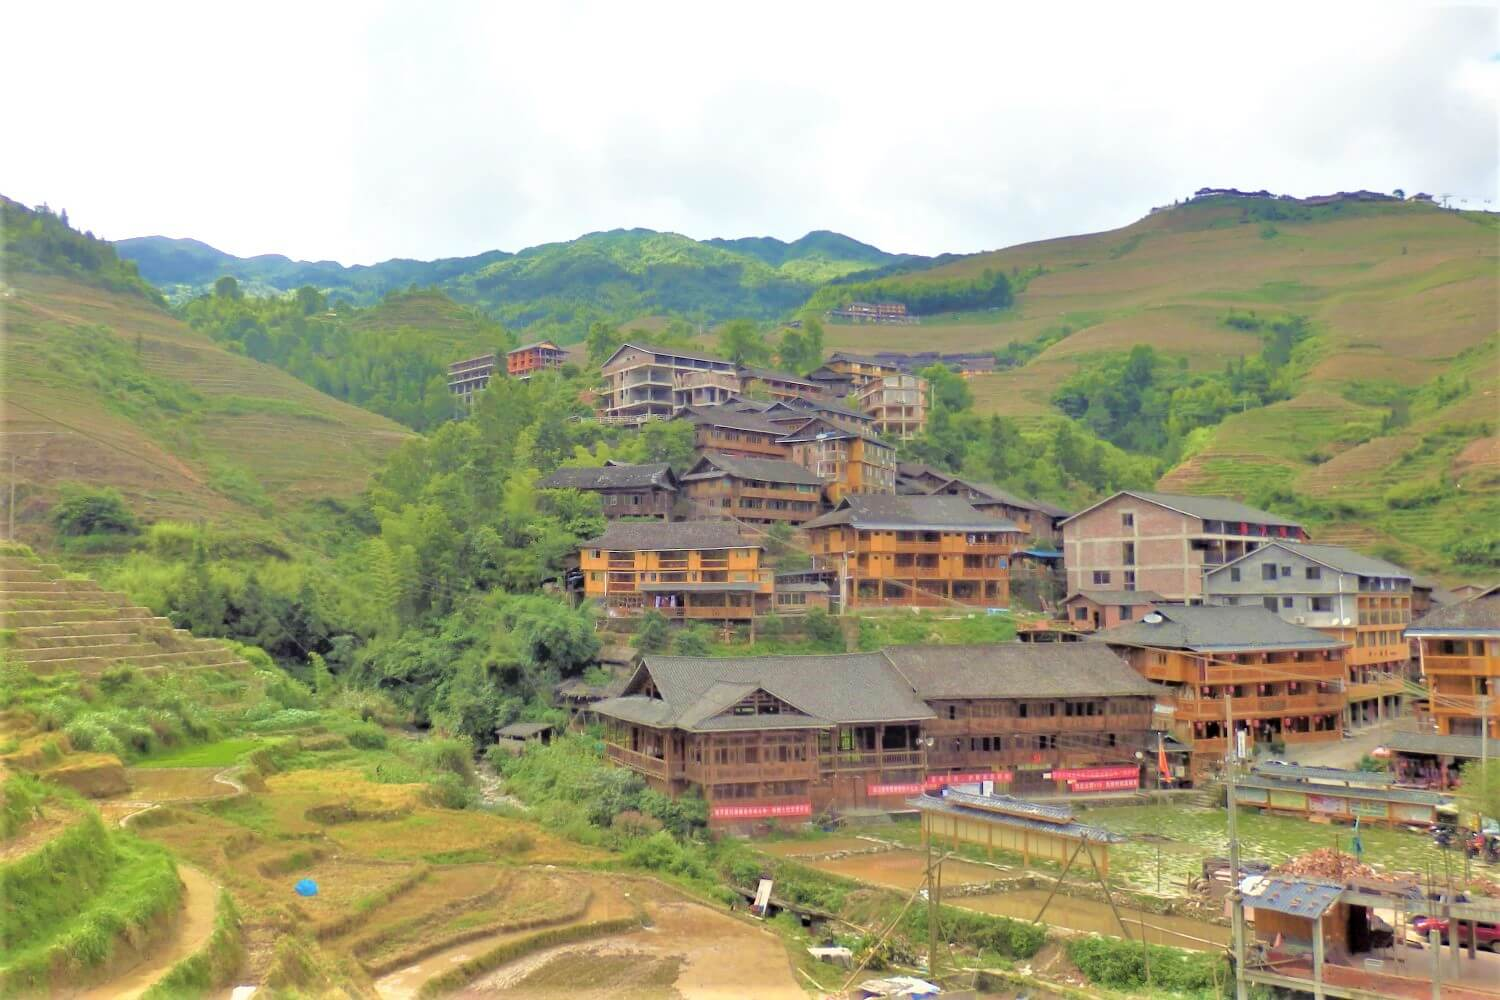 The village of Dazhai at the Jinkeng Rice Fields